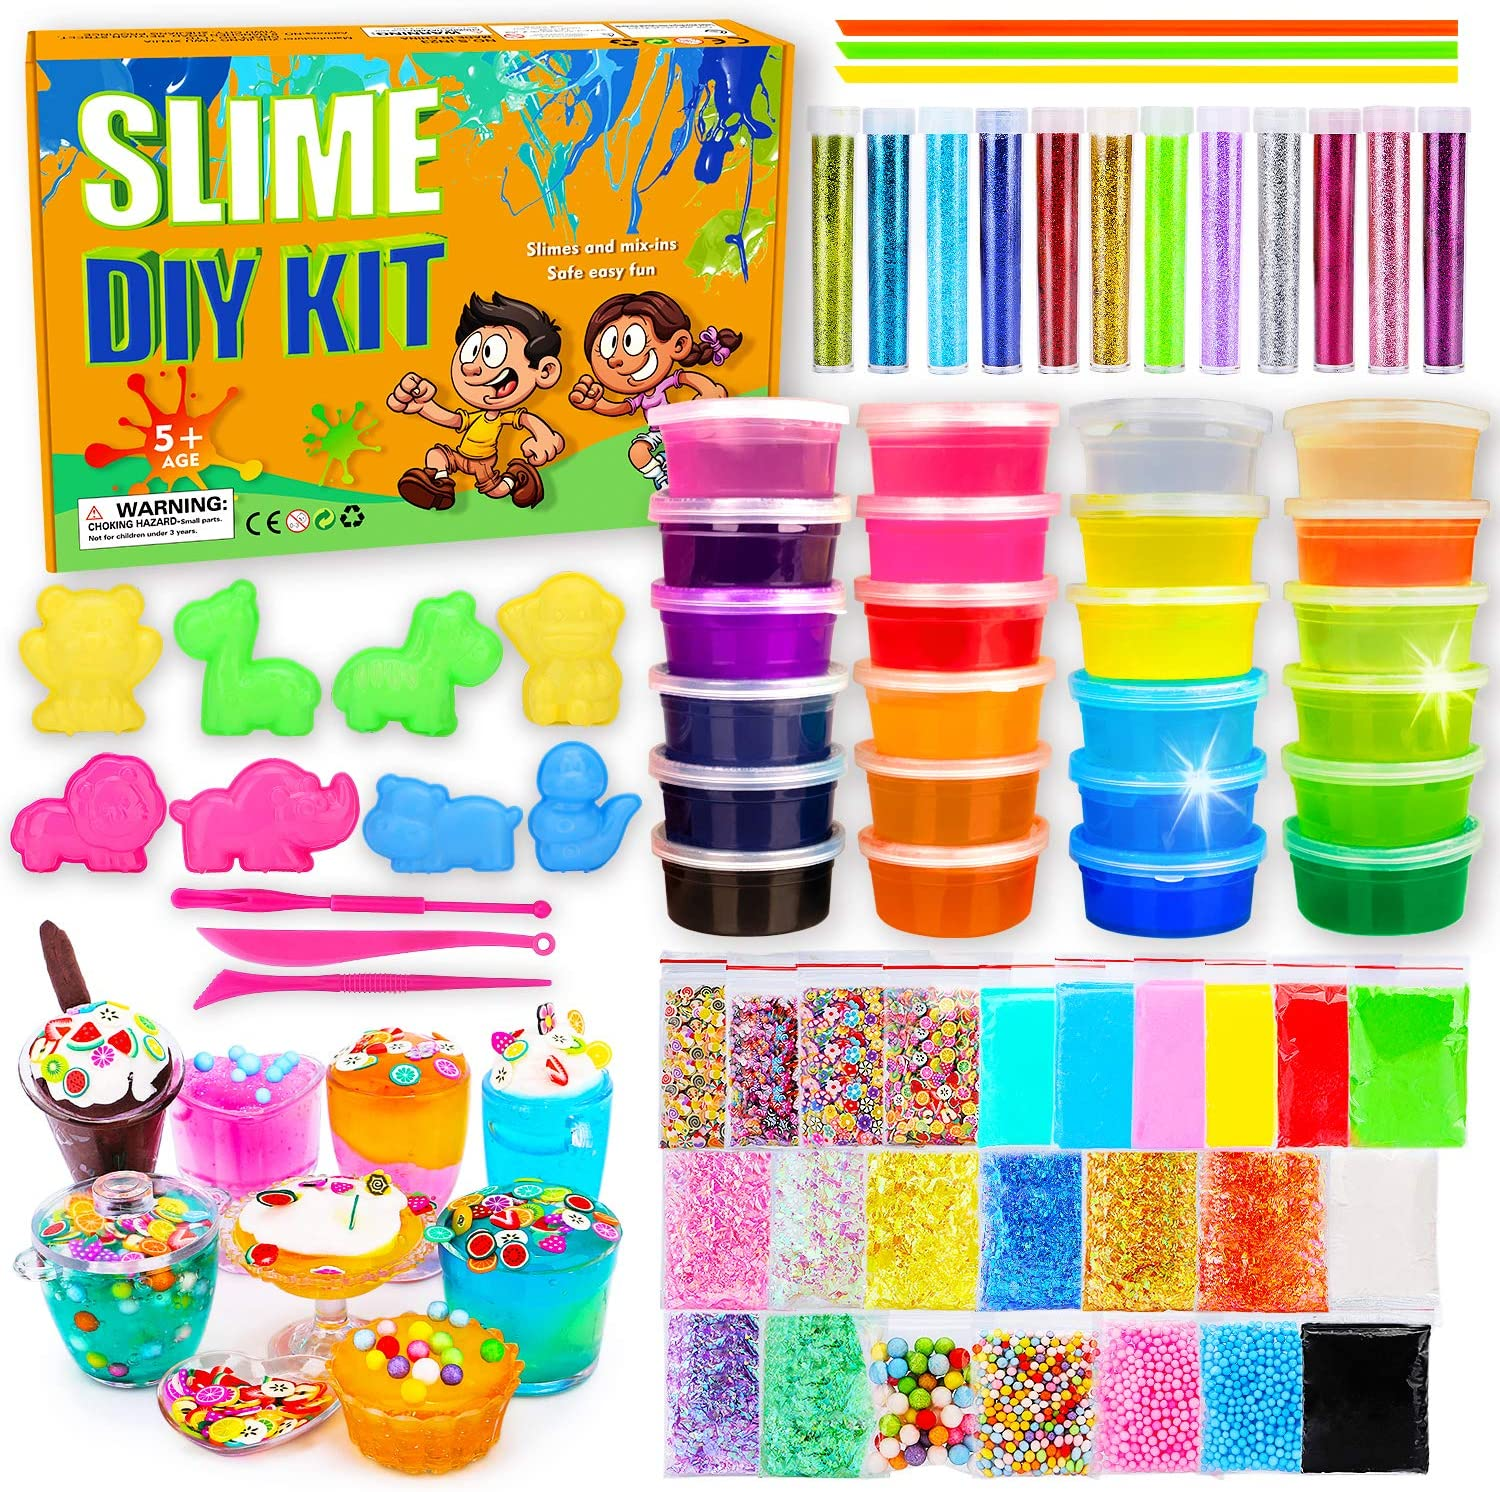 DIY Slime Kit-Ultimate Glow in The Dark Glitter Slime Making Kit- Slime Kit for 3 4 5 6 7 8 9 10 11 12 Year Old Girl and Boy Party Best Choice